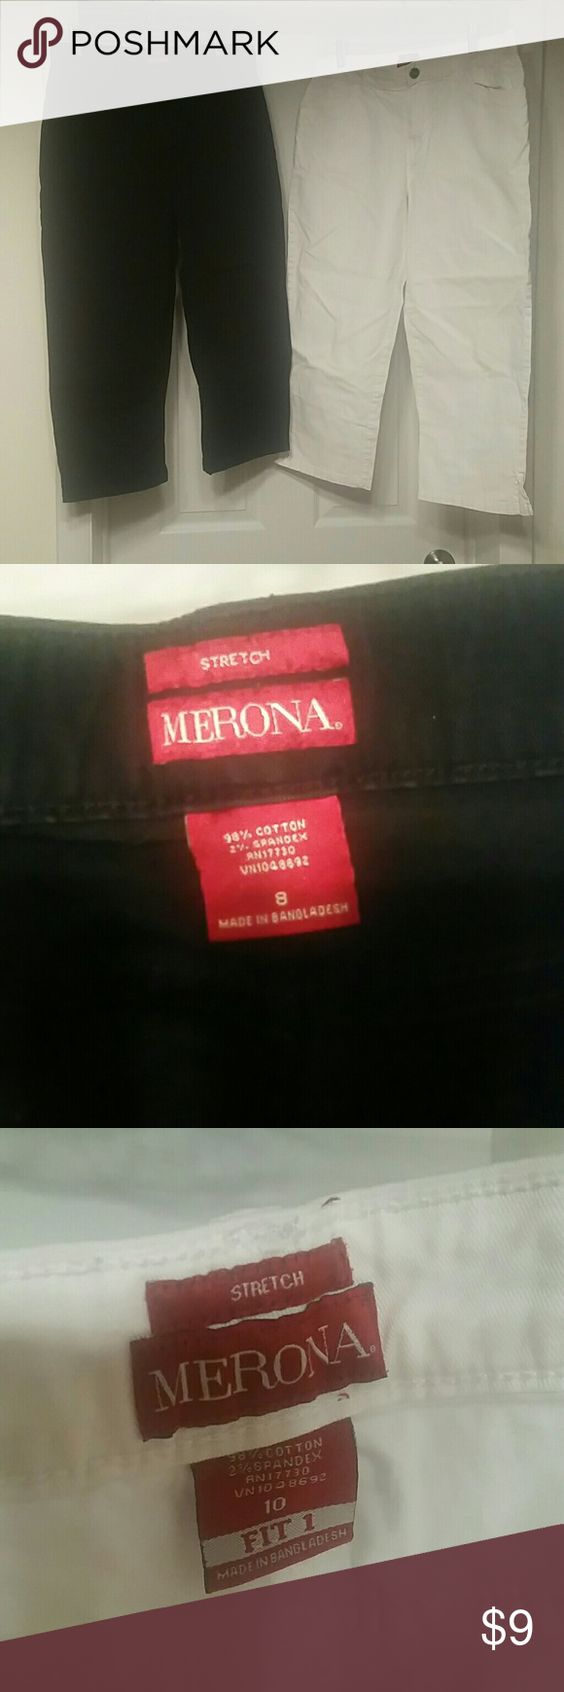 Merona Capri cropped  Pants size 8 and size 10 Black size 8, white size 10. $9 each . Would discount on bundles.  My mom lost weight n just gave me over 30 pair of pants for me to sell for her,  most of them capris.  Brands are Dockers,  Calvin Klein Jeans,  Liz Claiborne,  Morena and Gloria Vanderbuilt.  All of them are like brand new.  None of them have been worn more than twice.  Really!   I WOULD LOVE TO PERSONALIZE A BUNDLES FOR YOU. JUST ASK ME! Merona Pants Capris